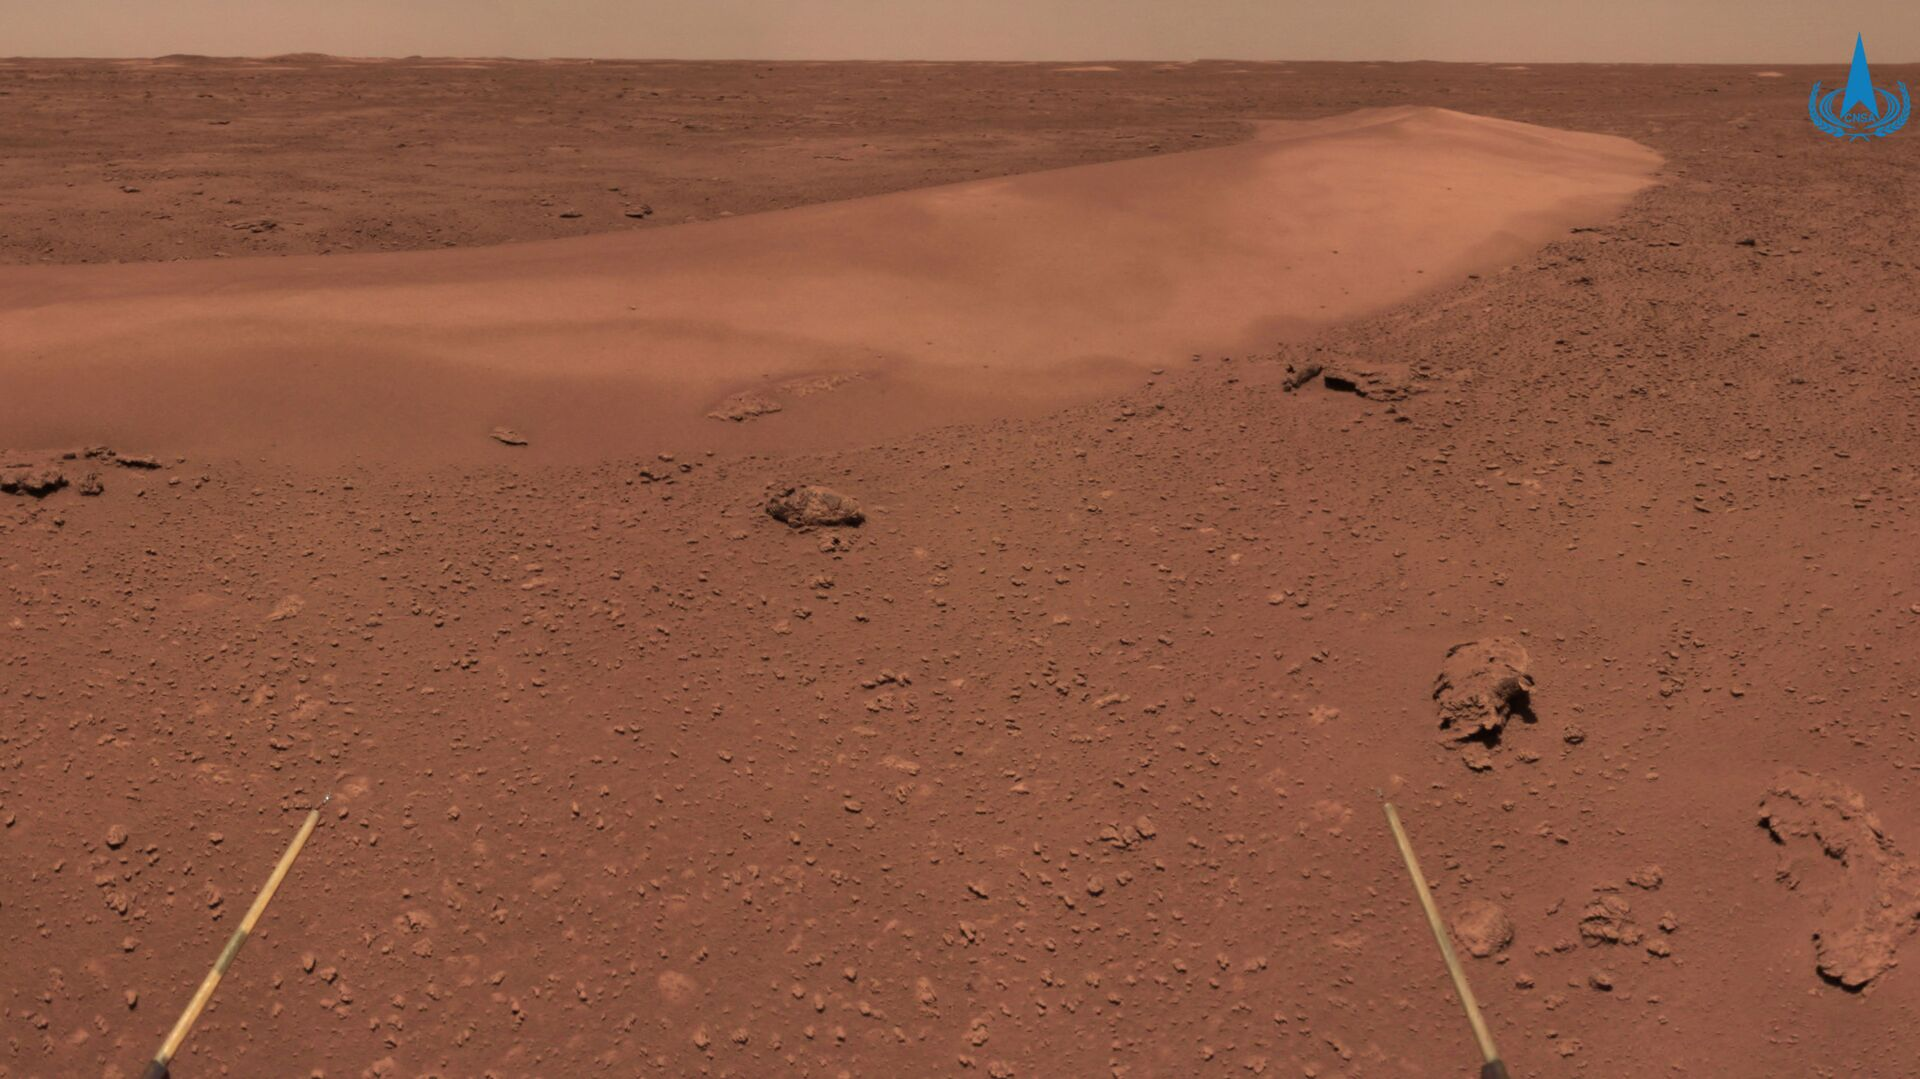 This handout photograph taken on June 26, 2021 and released on July 9, 2021 by the China National Space Administration (CNSA) shows the surface of Mars taken from China's Zhurong Mars rover. - Sputnik International, 1920, 10.09.2021